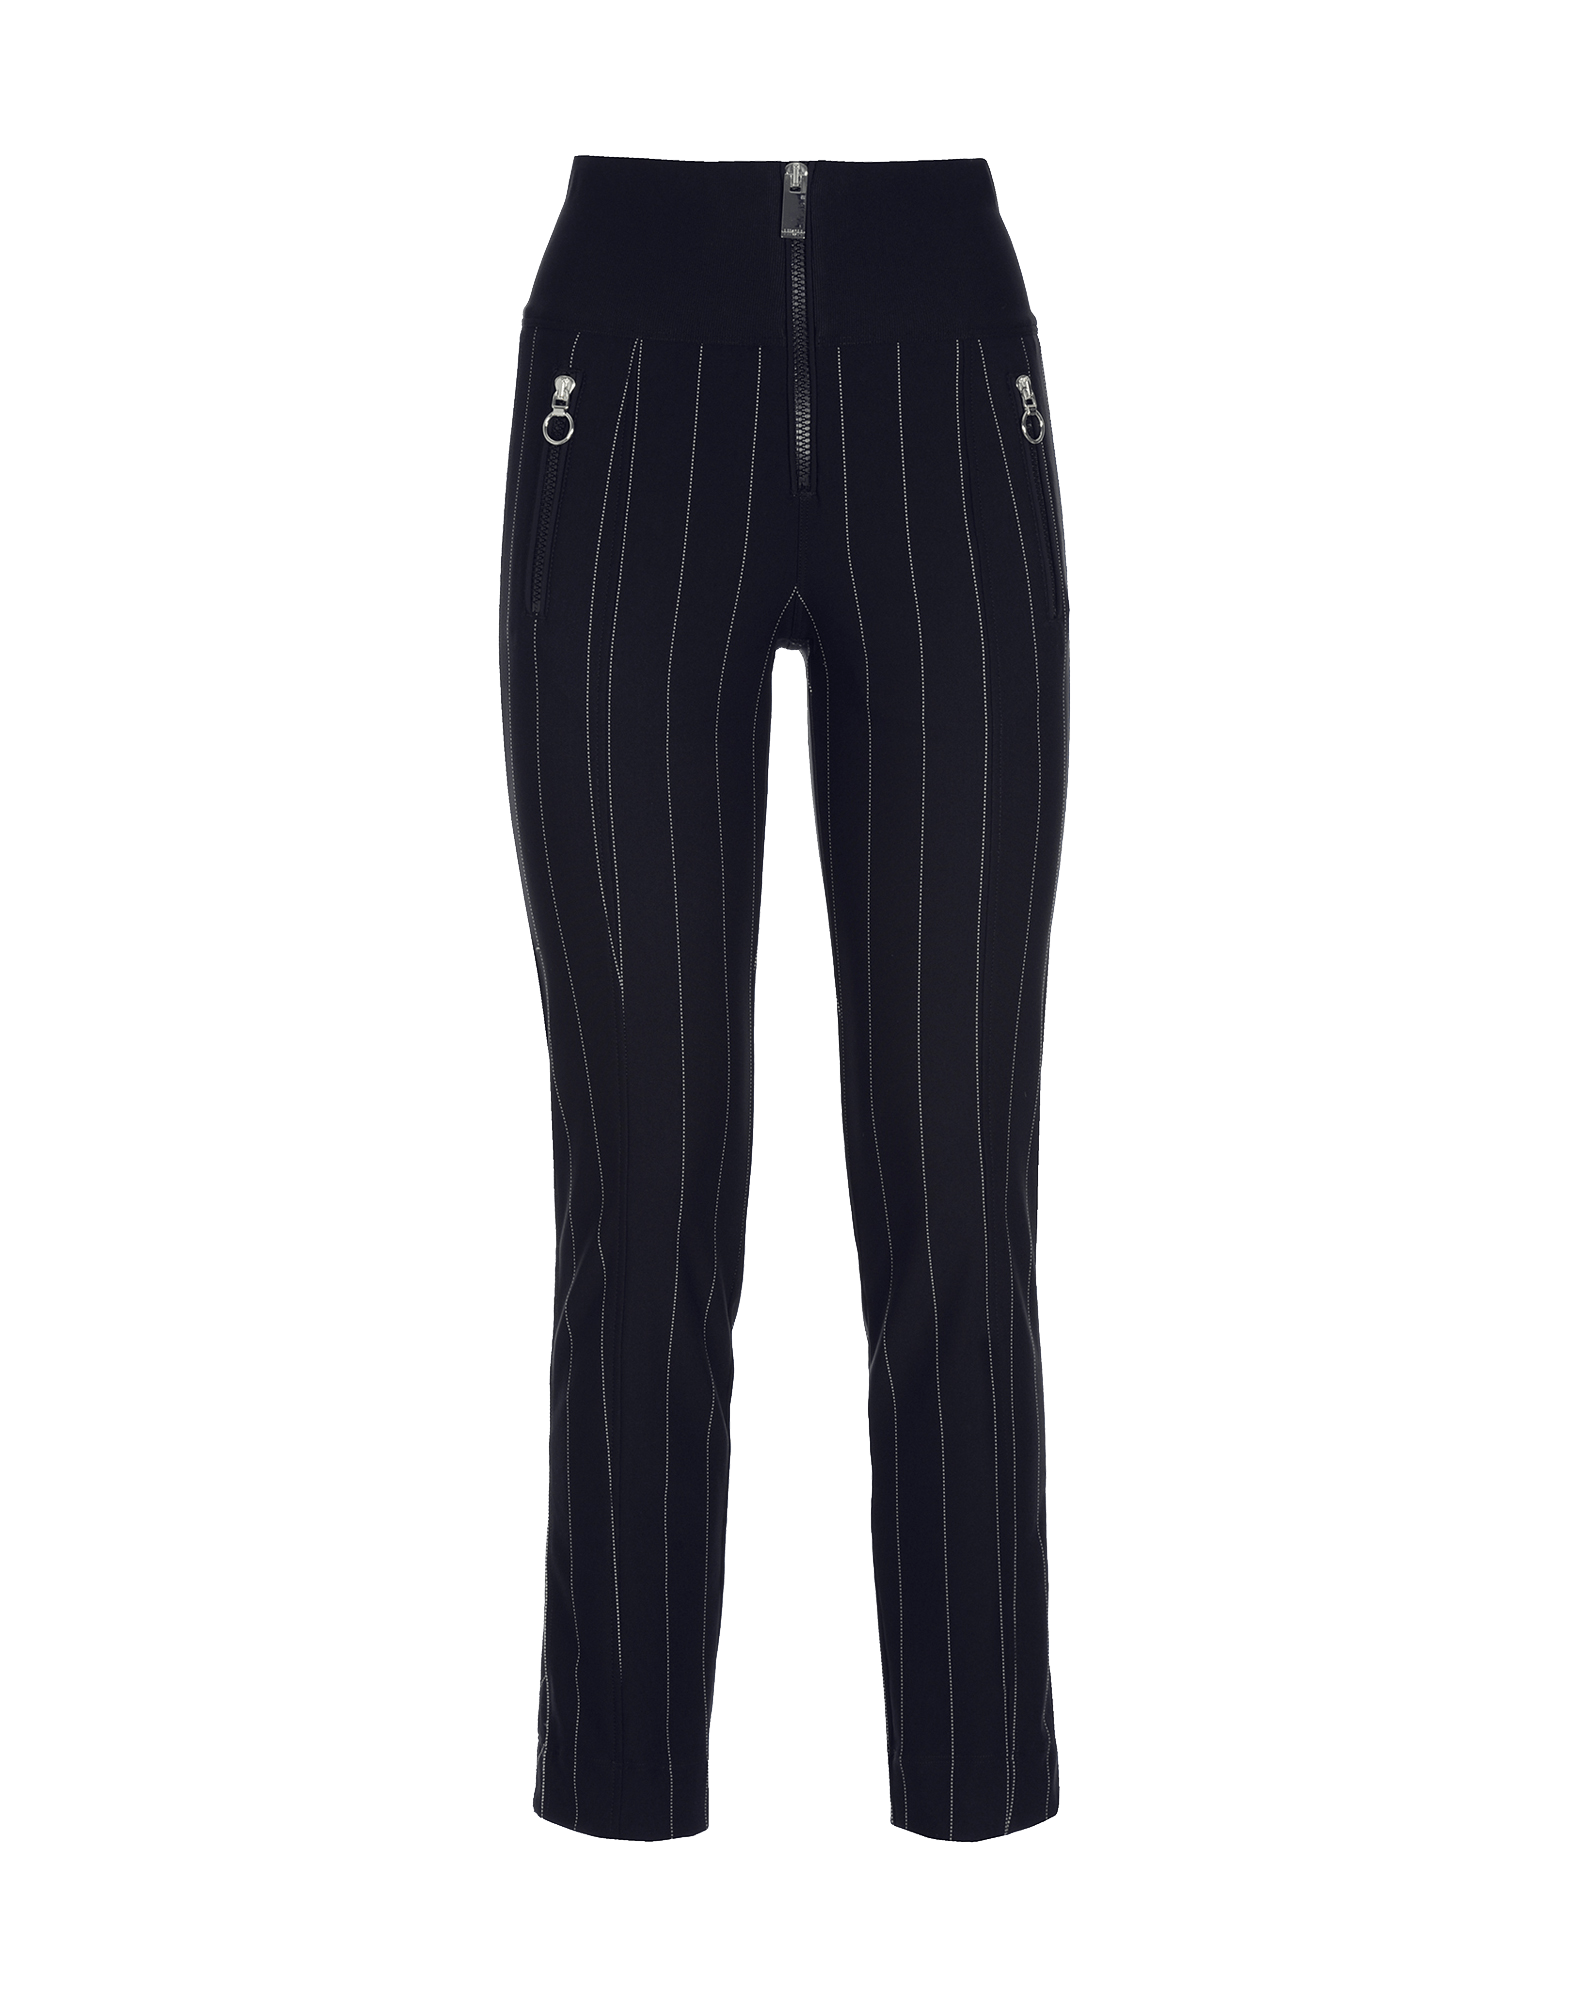 4bcebb3c MINIMALIST. HIGH TECH. Navy and white pinstripe pant with ...